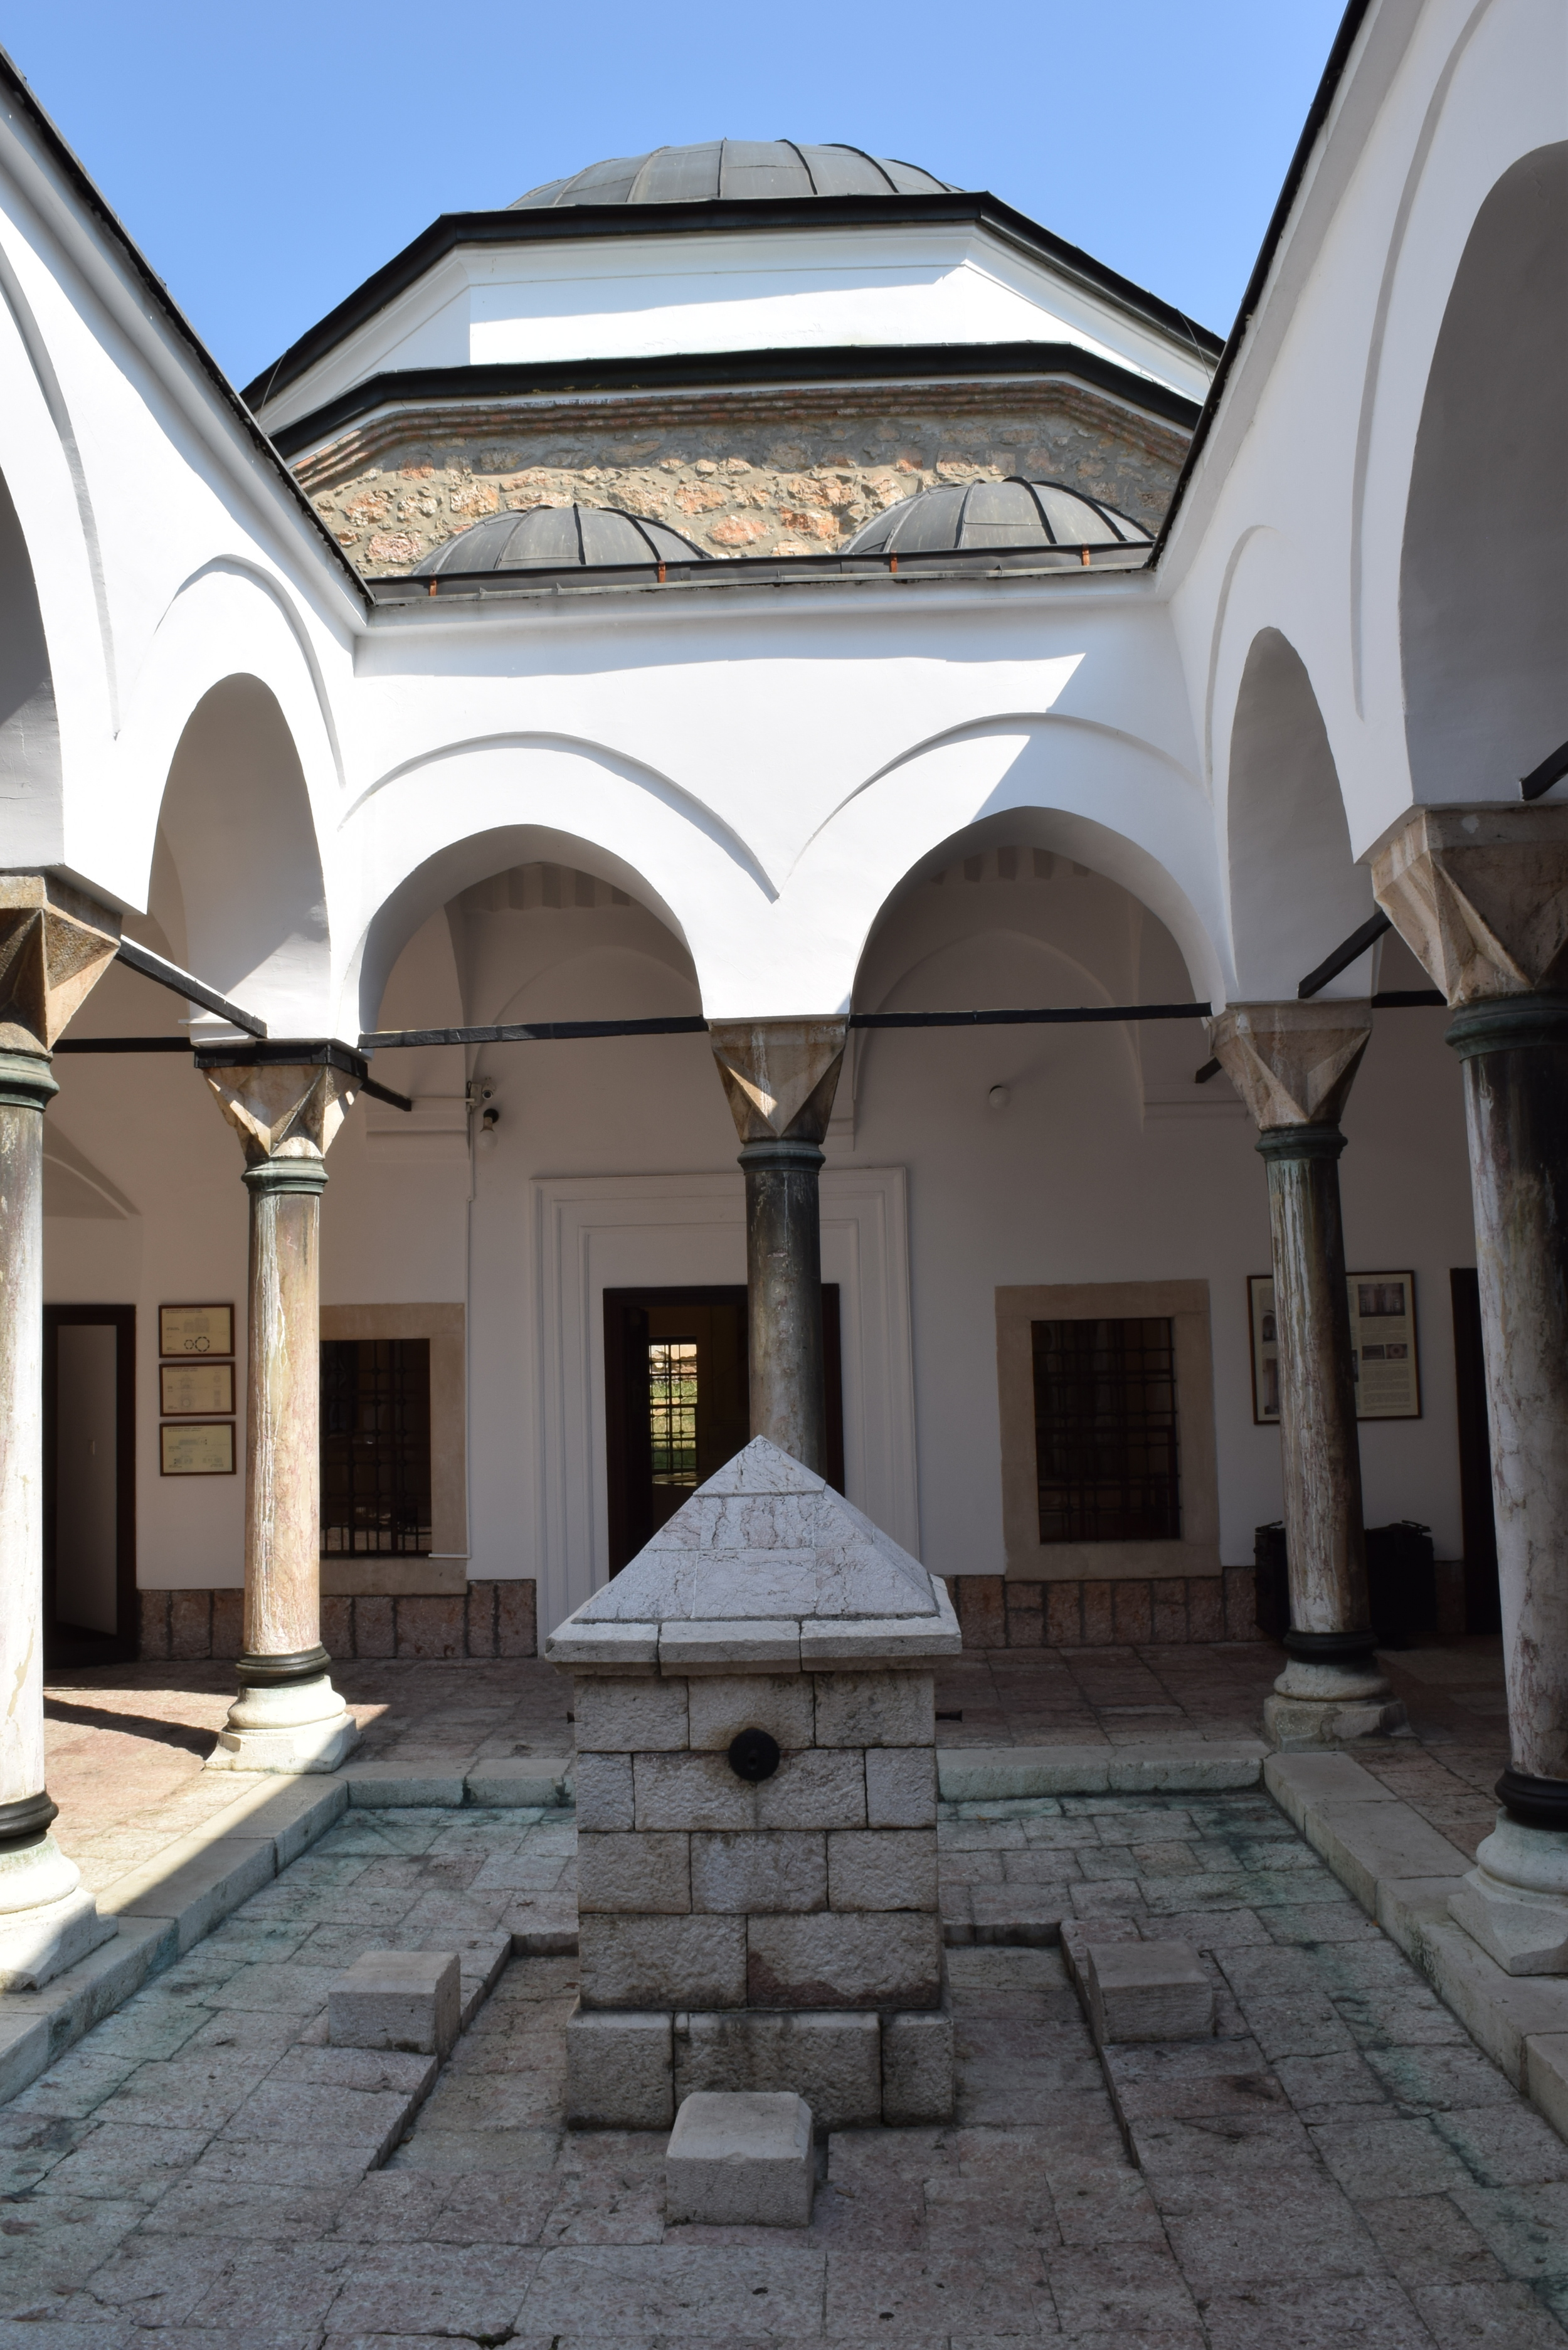 Courtyard of the madrasa